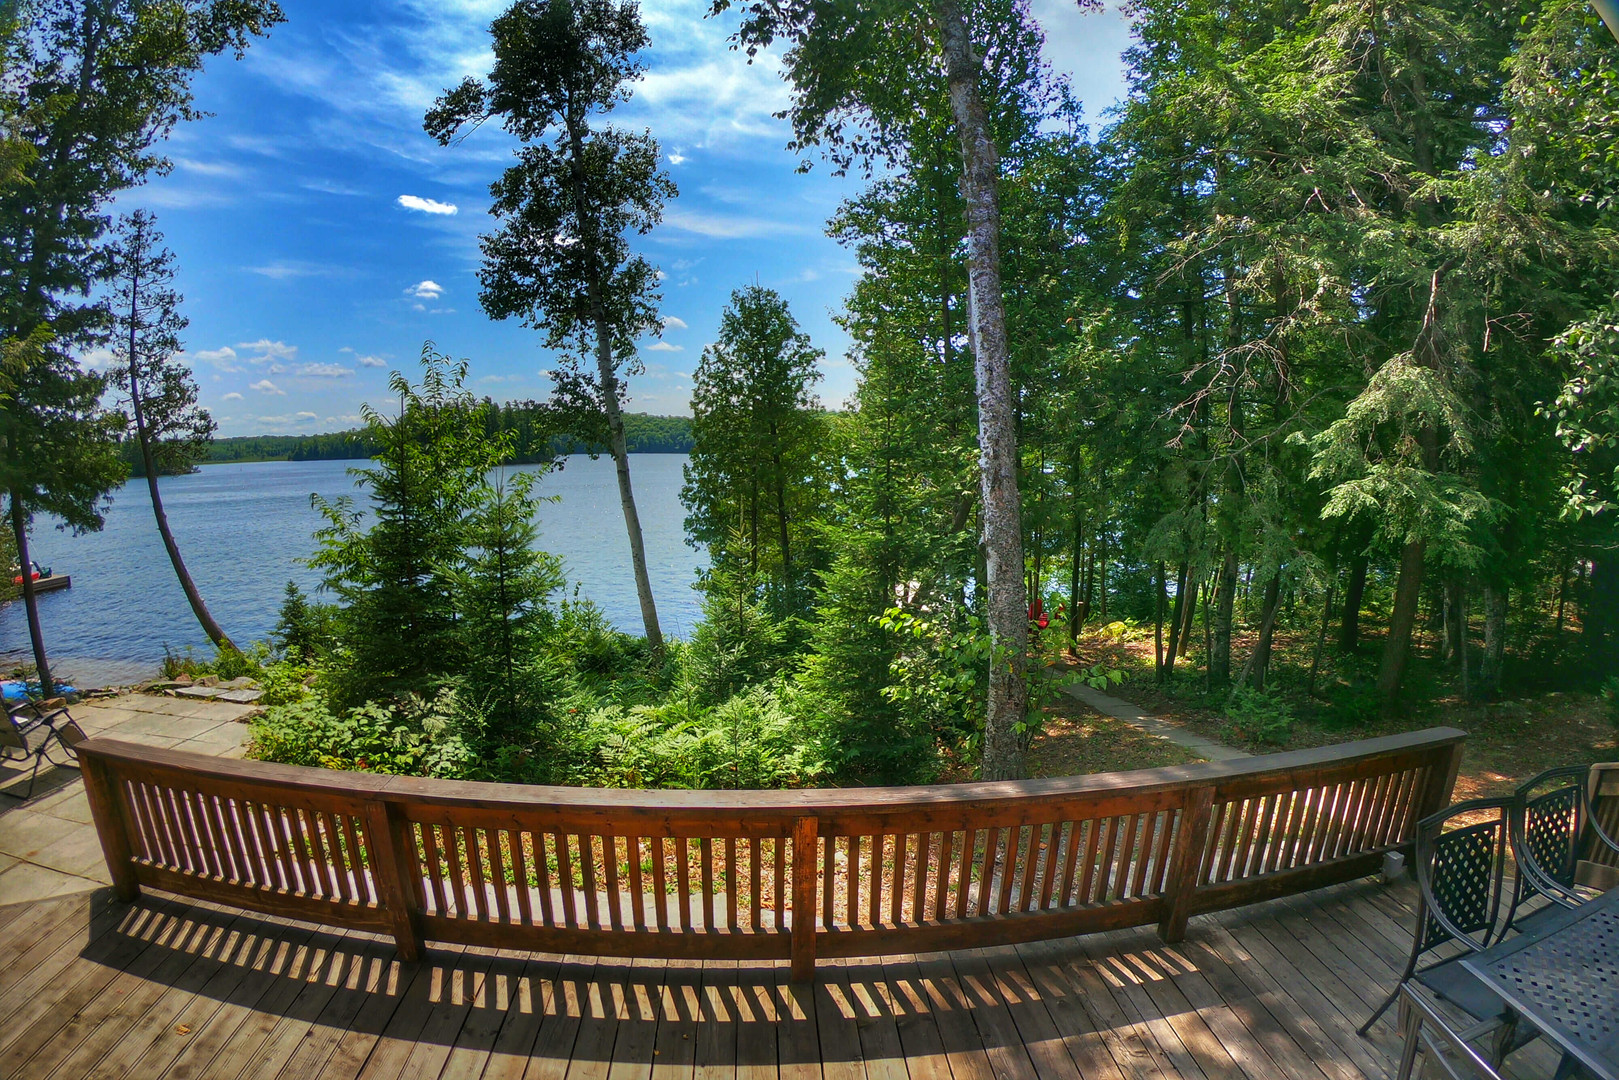 Relaxing on waterfront cottage rental